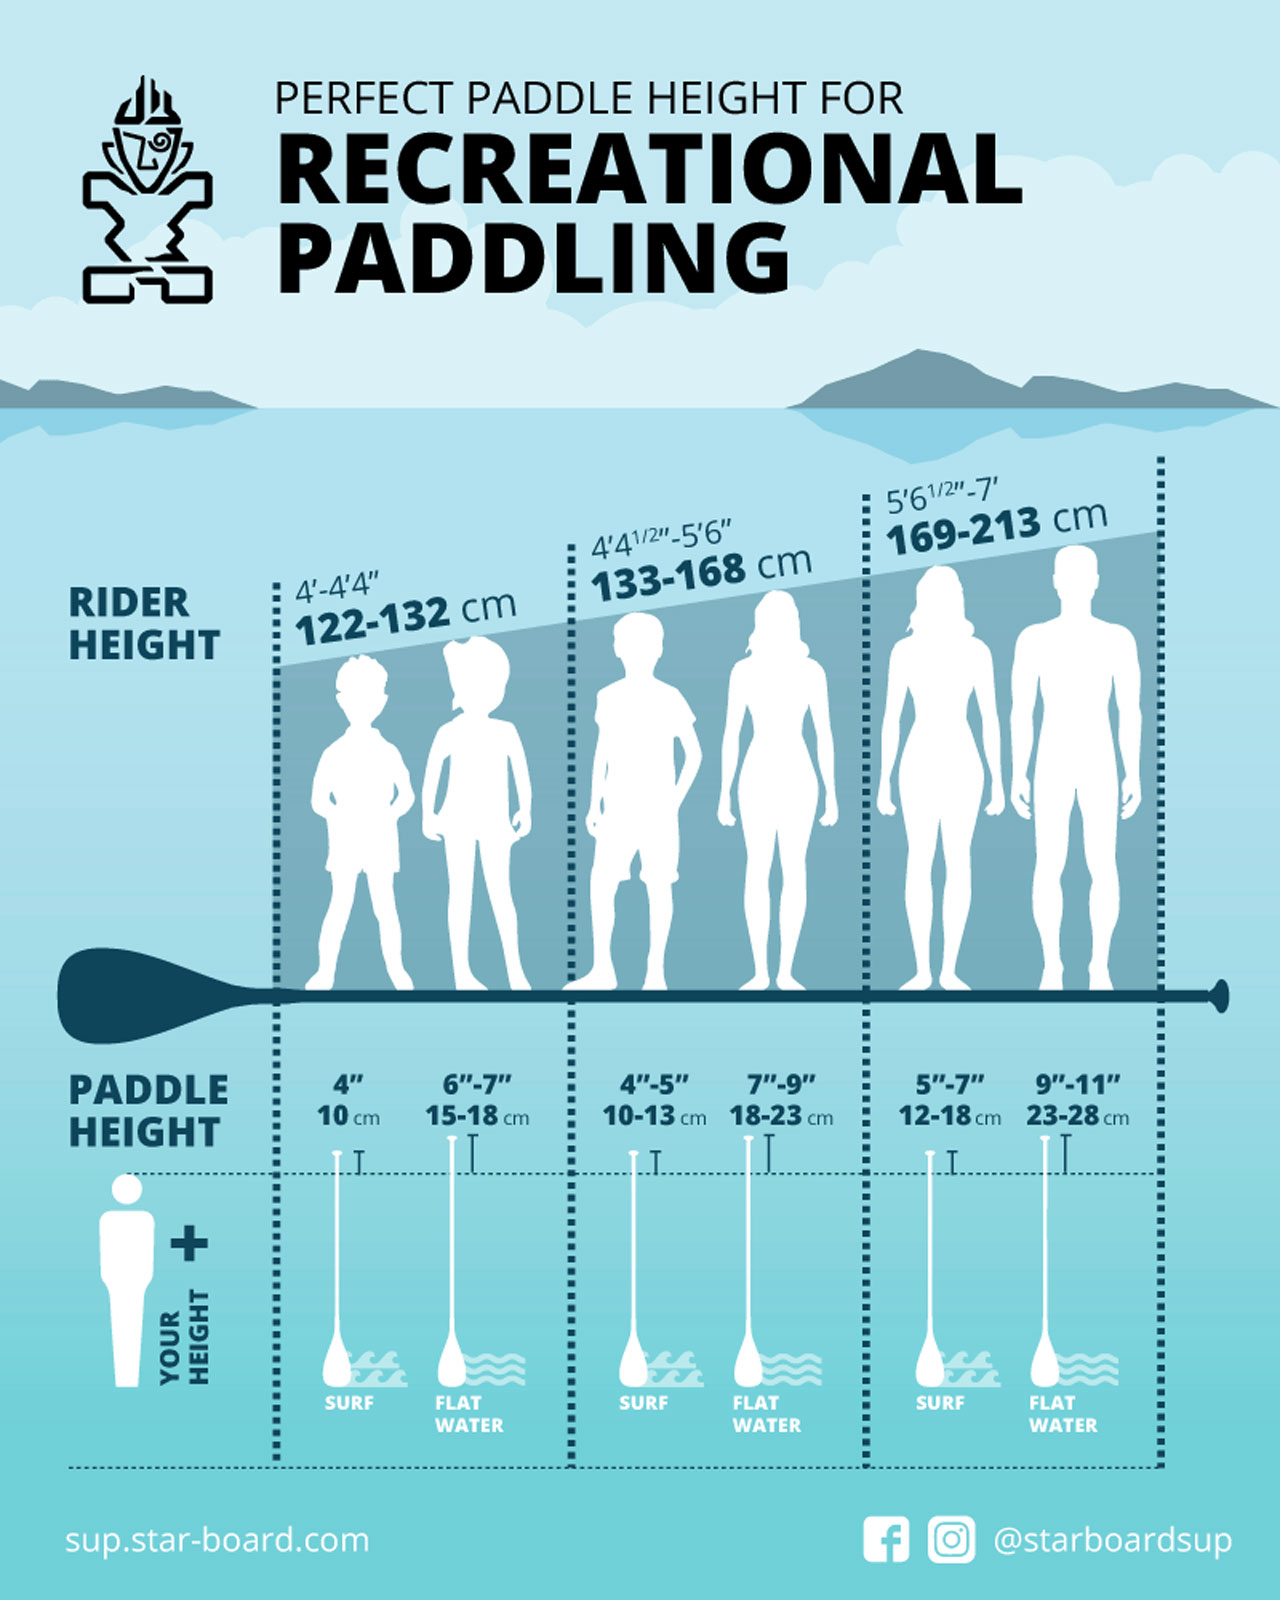 Paddle Setup Chart How To Set SUP Paddle Height for Recreational Paddling - Starboard